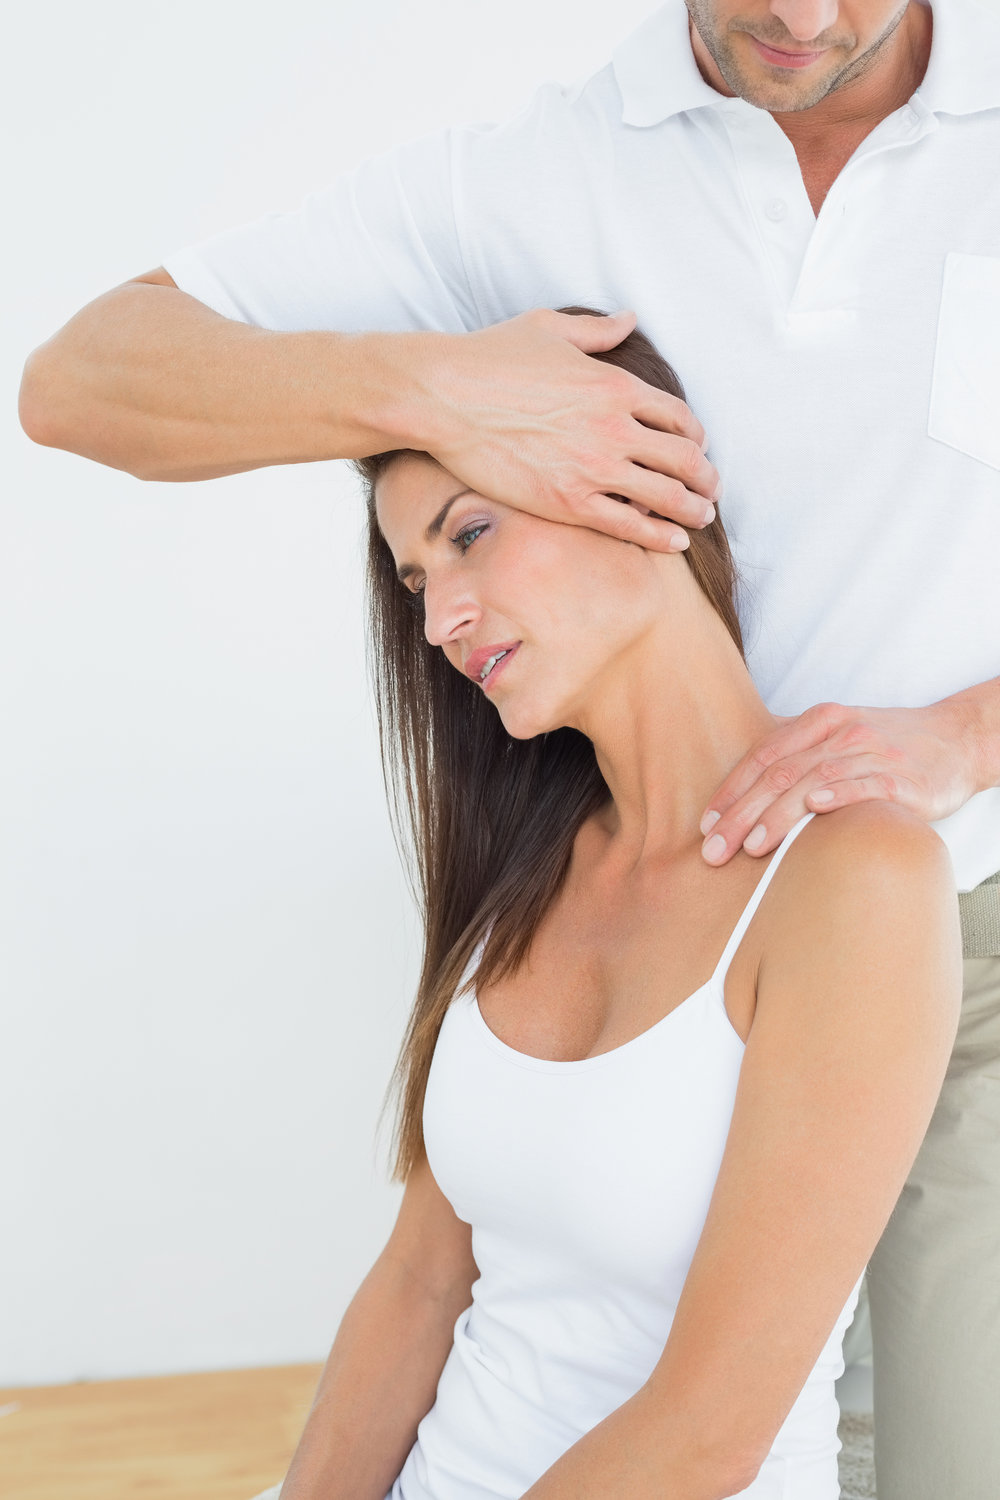 bigstock-Male-chiropractor-doing-neck-a-55674827.jpg